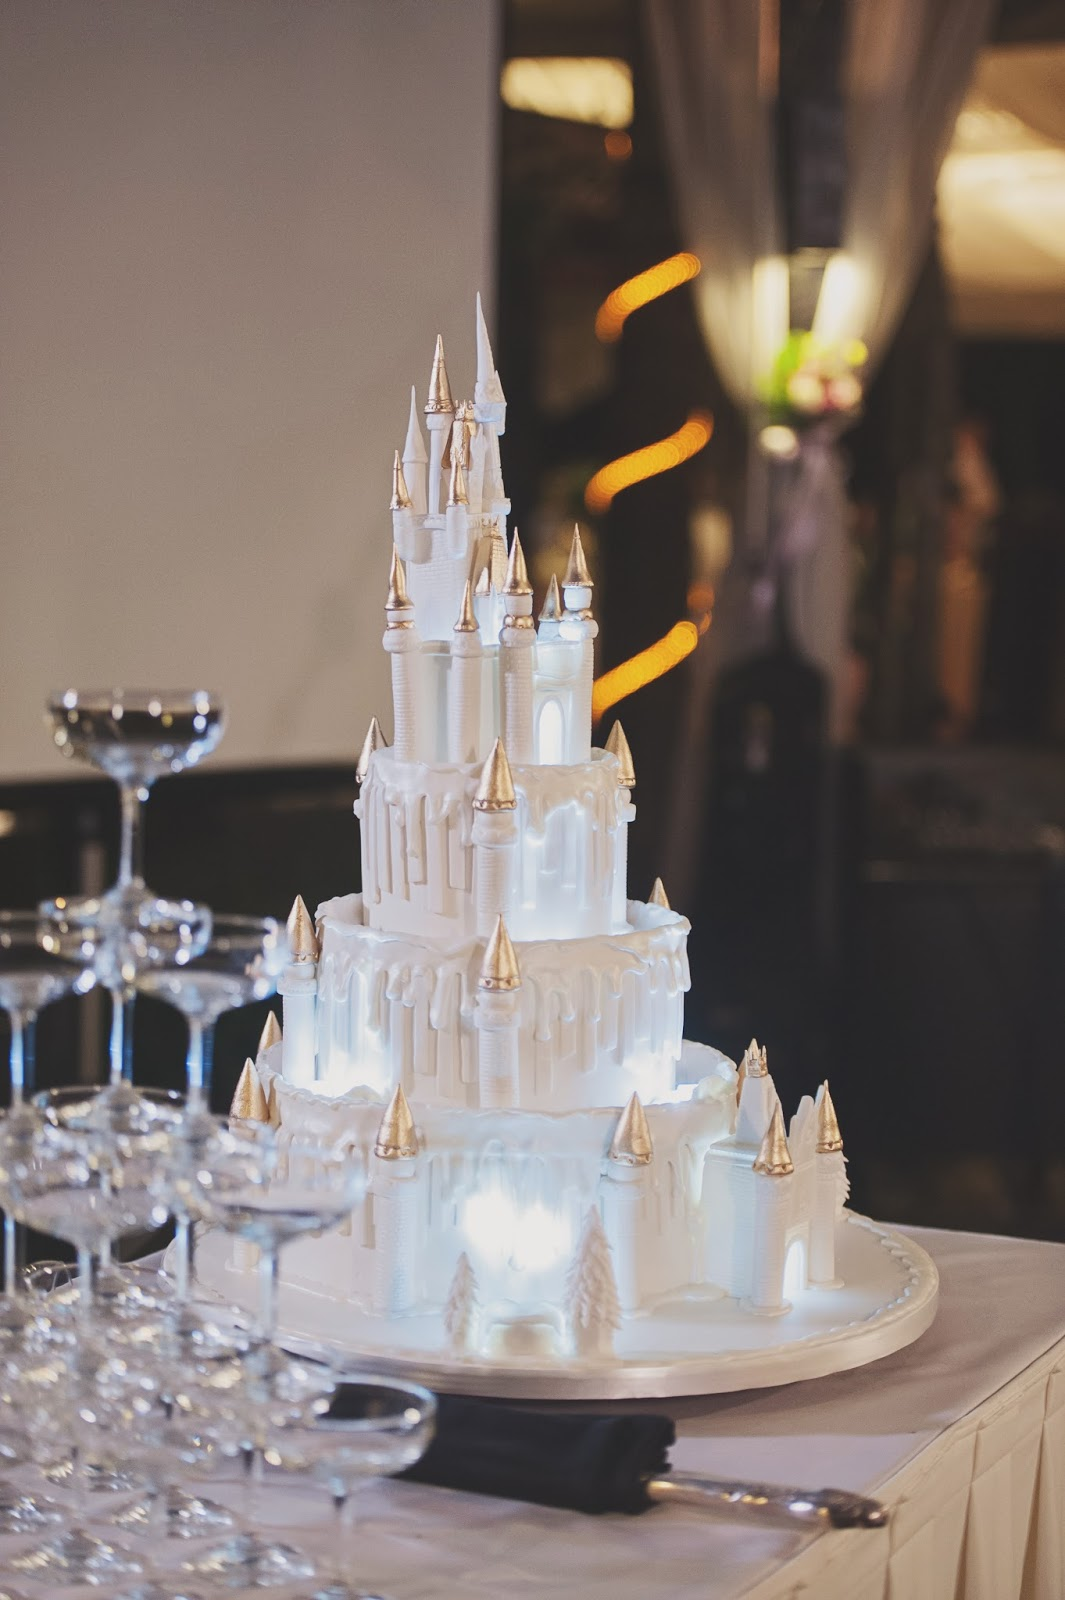 DisneyThemed Cakes Will Bring Some Magic To Your Wedding